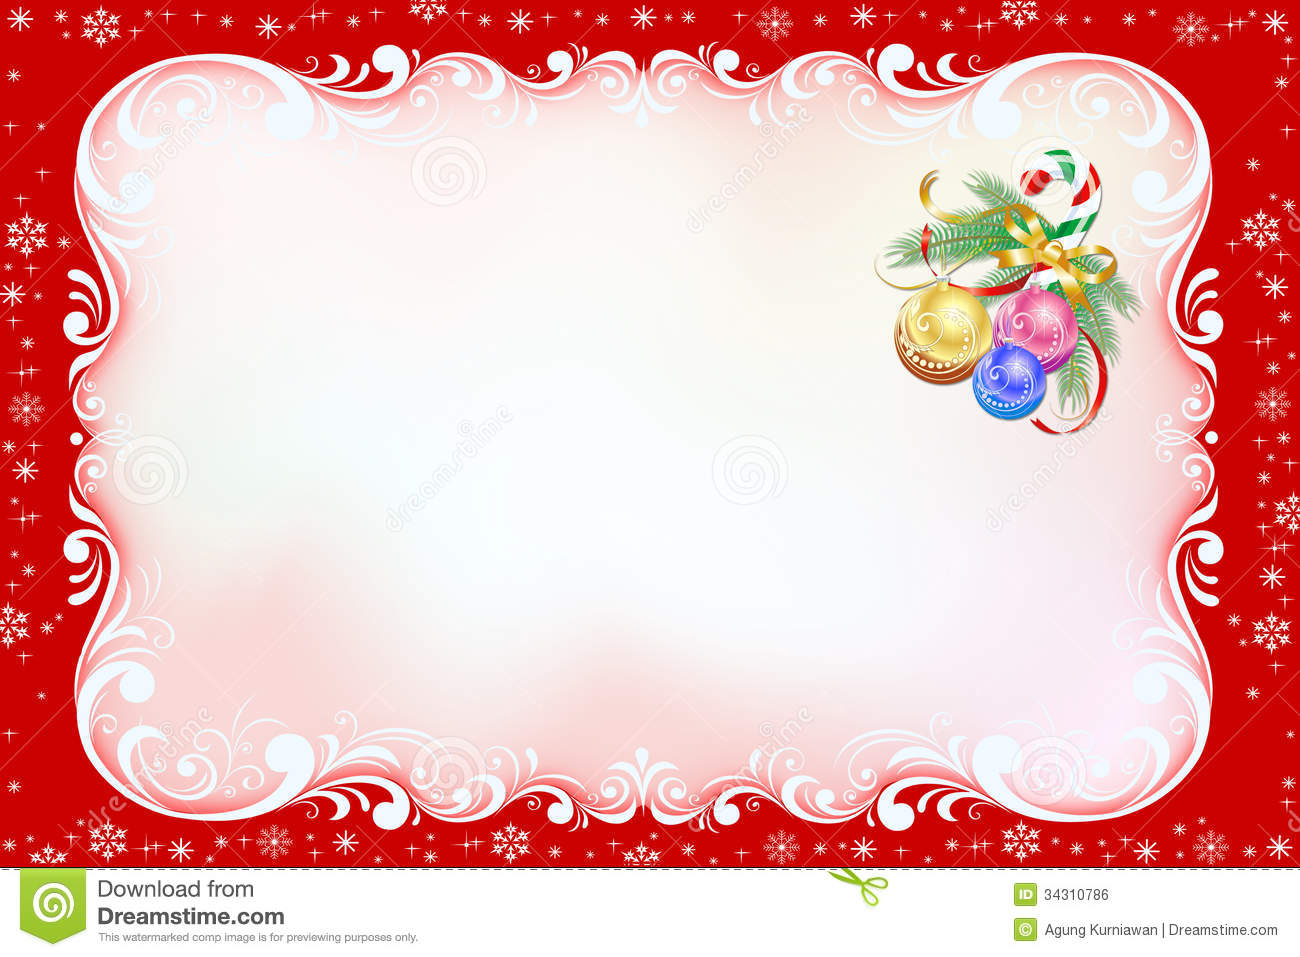 Red Christmas Card With Swirl Frame. Illustration 34310786 - Megapixl